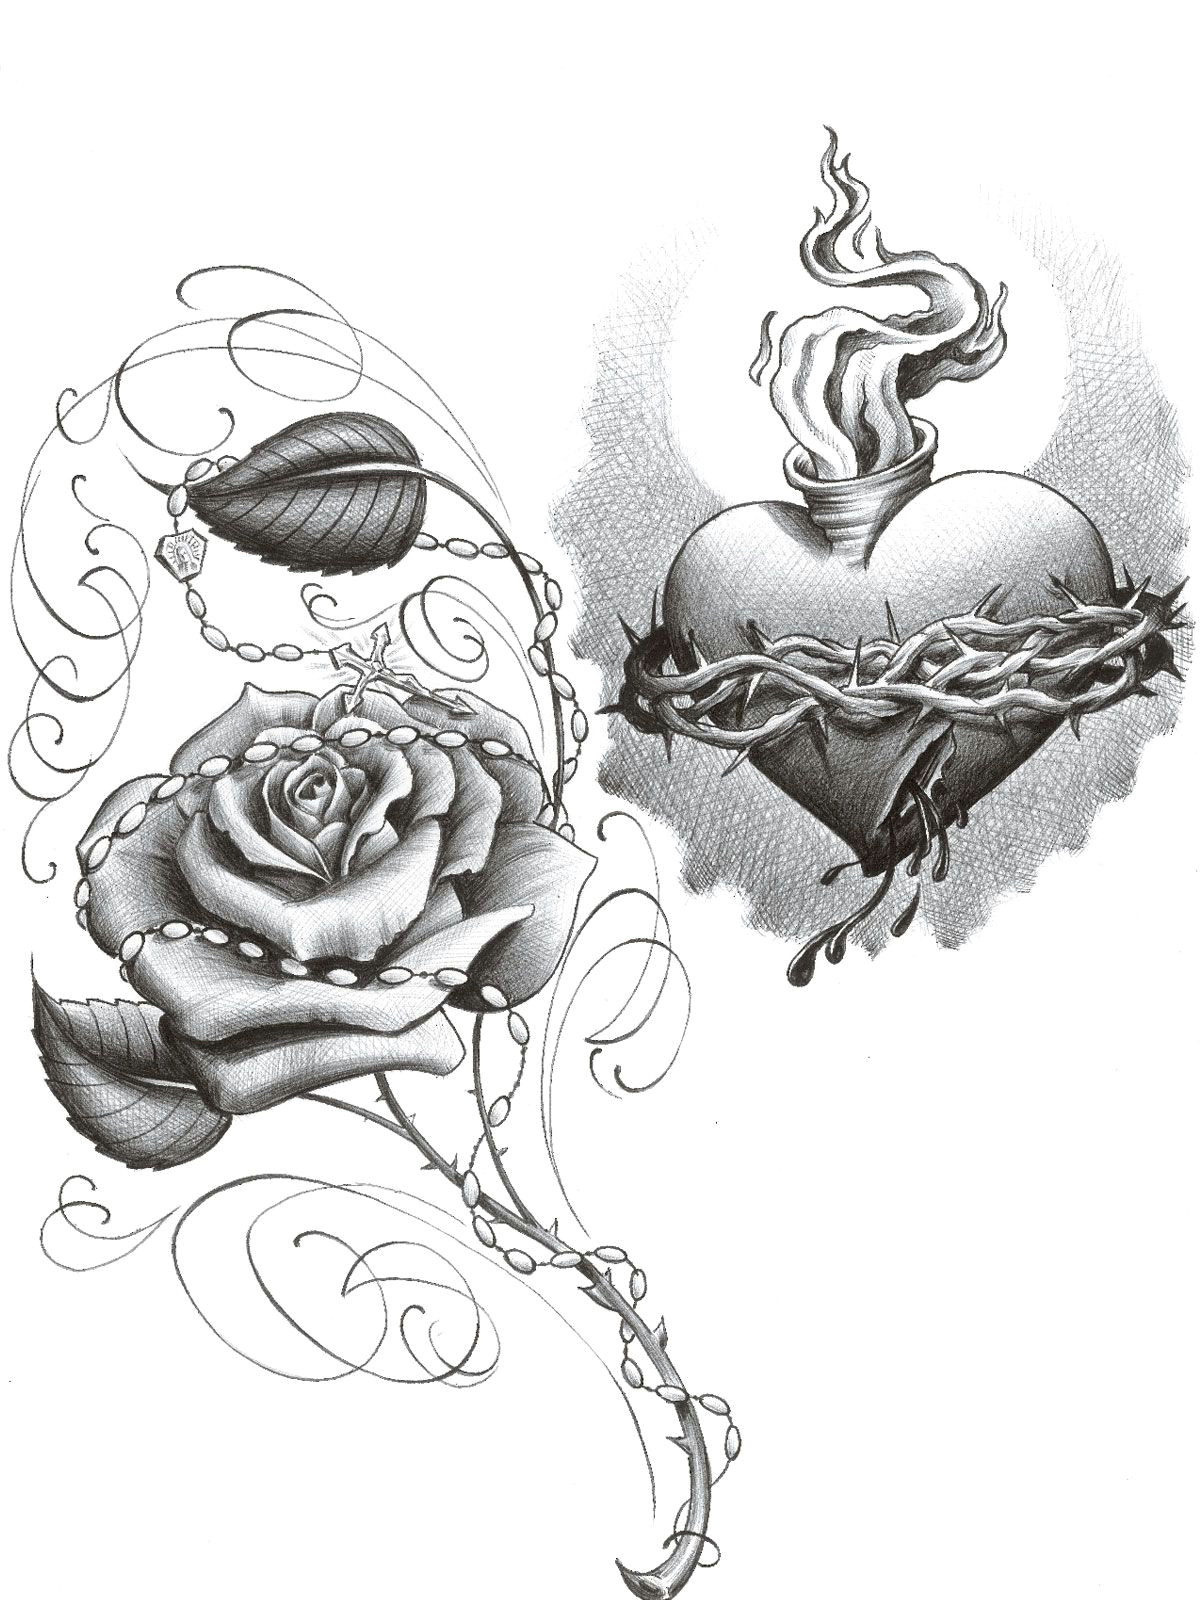 chicano art drawings roses chicano rose thugs chica tat by 2face tattoo on deviantart see it